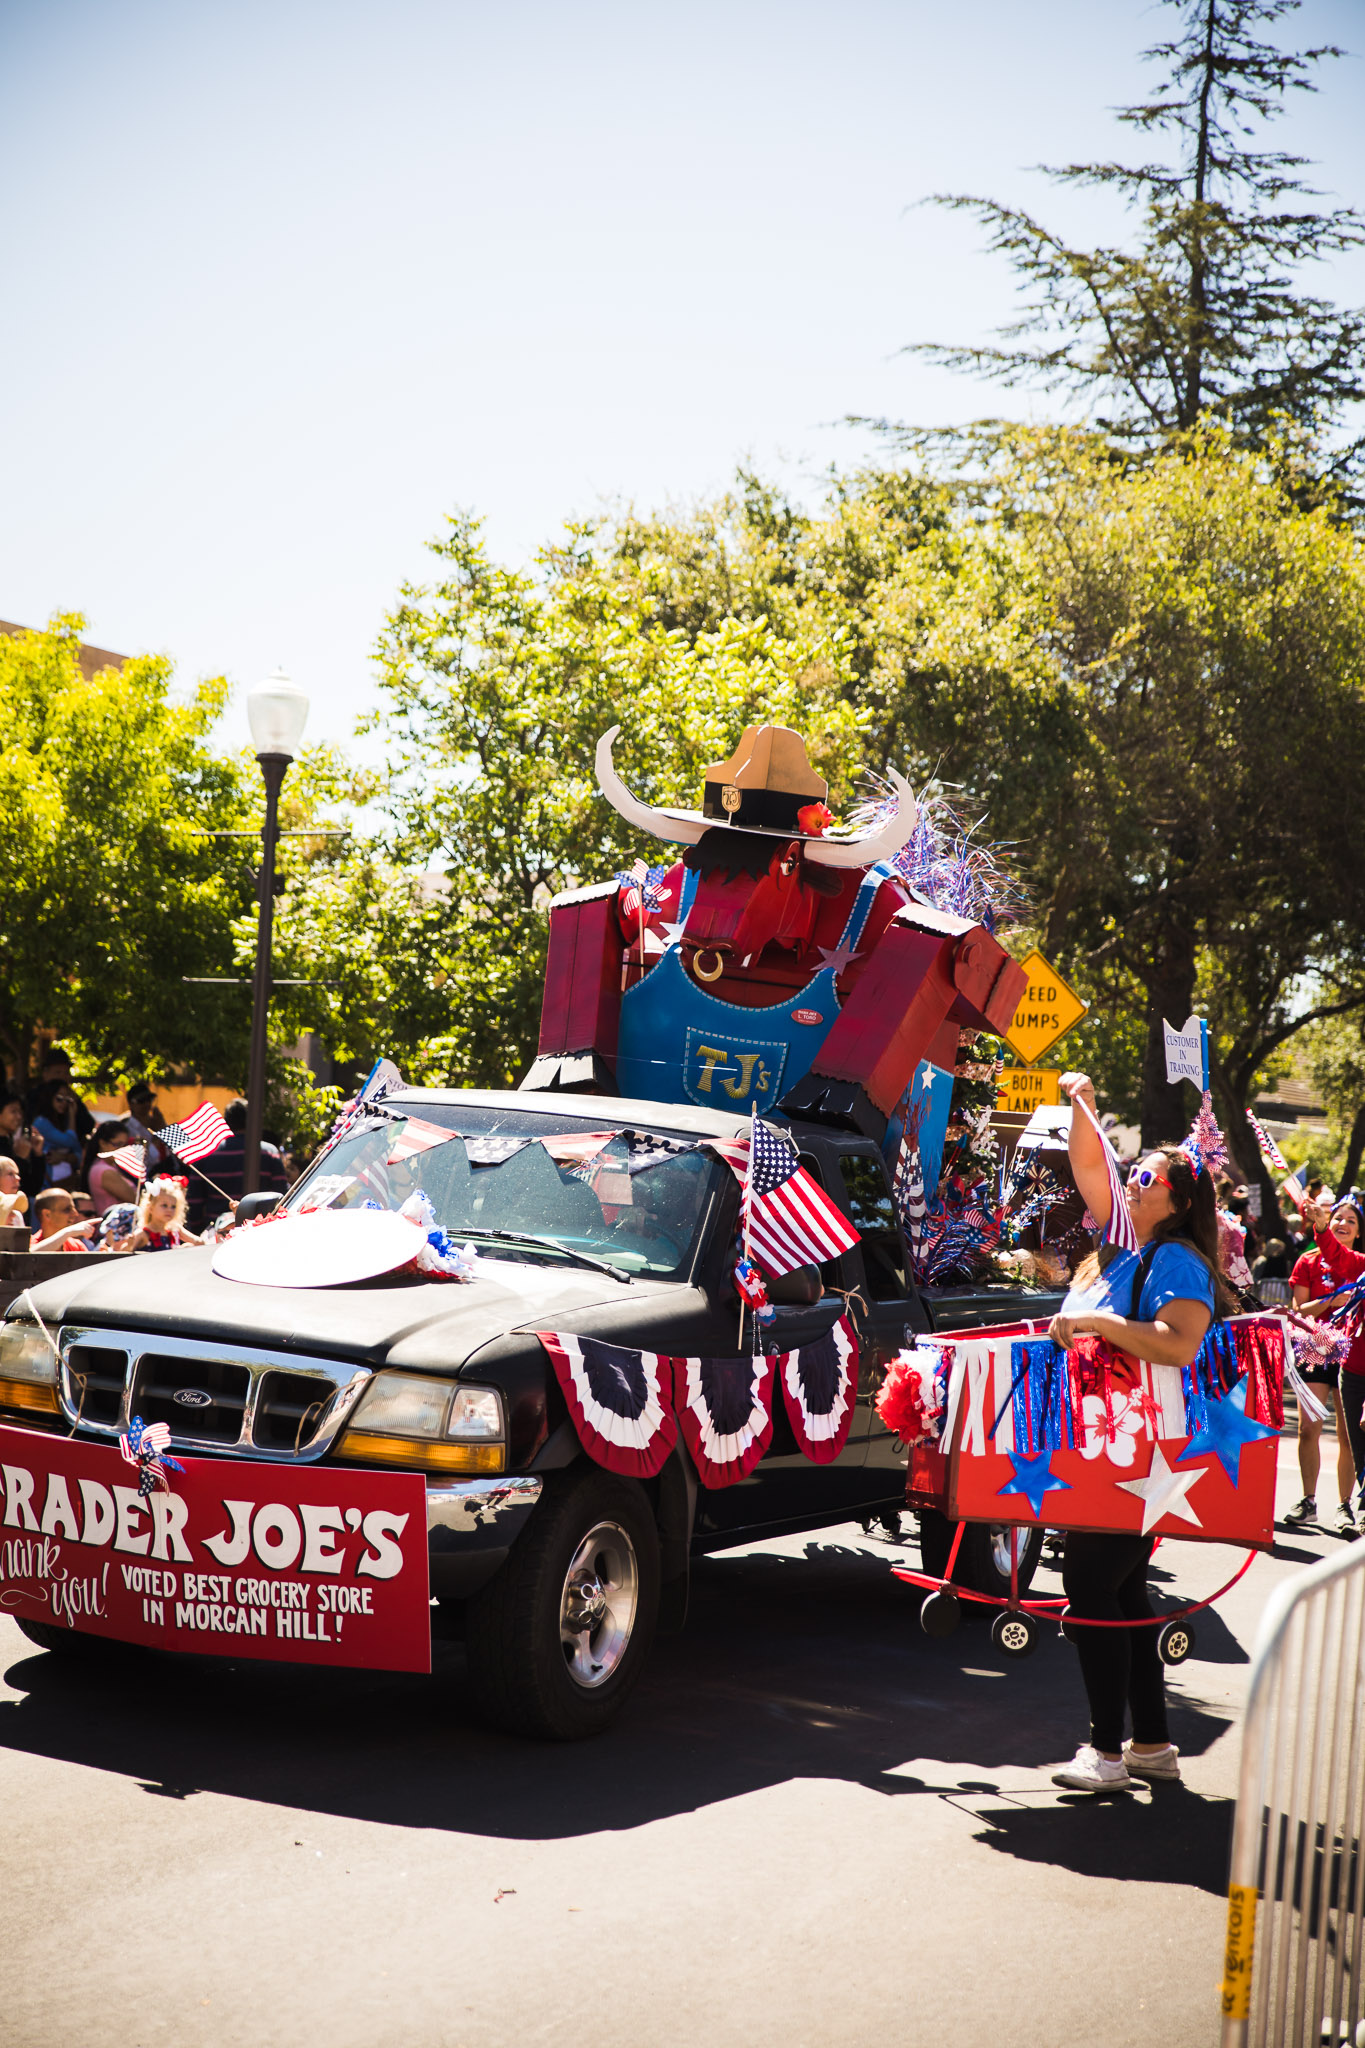 Archer_Inspired_Photography_Morgan_Hill_California_4th_of_july_parade-94.jpg